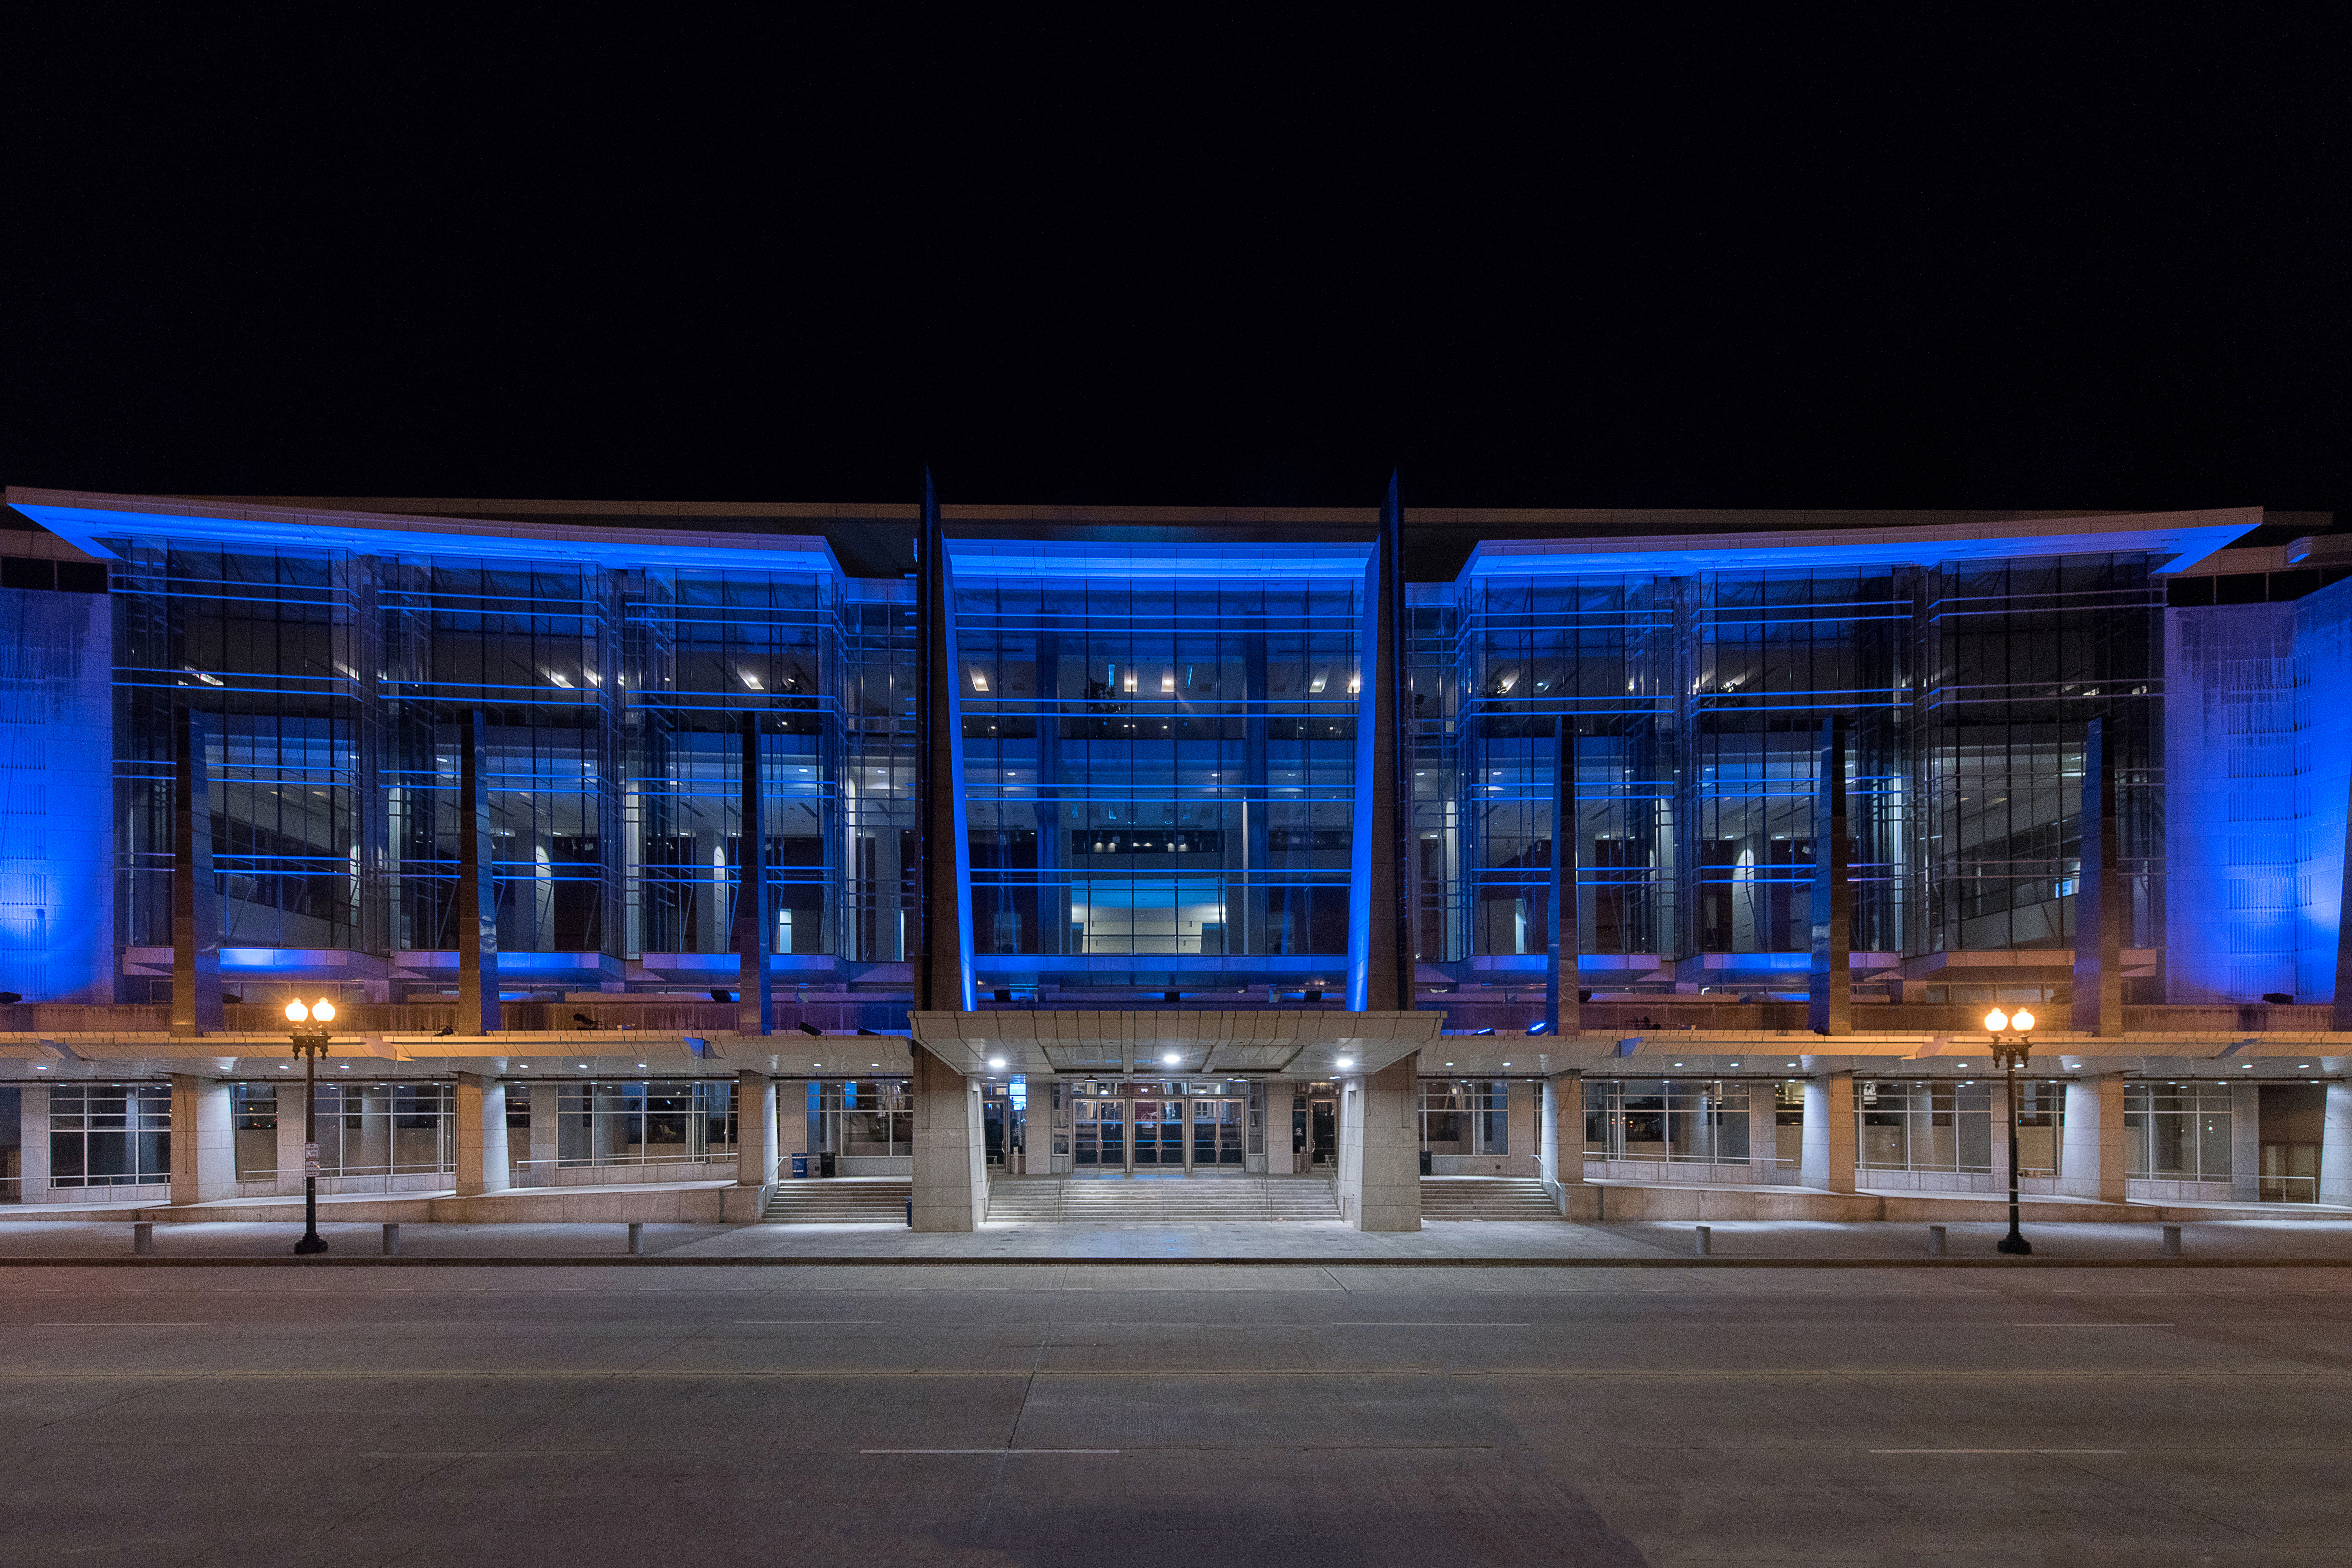 Exterior shot of the Walter E. Washington Convention Center lit blue